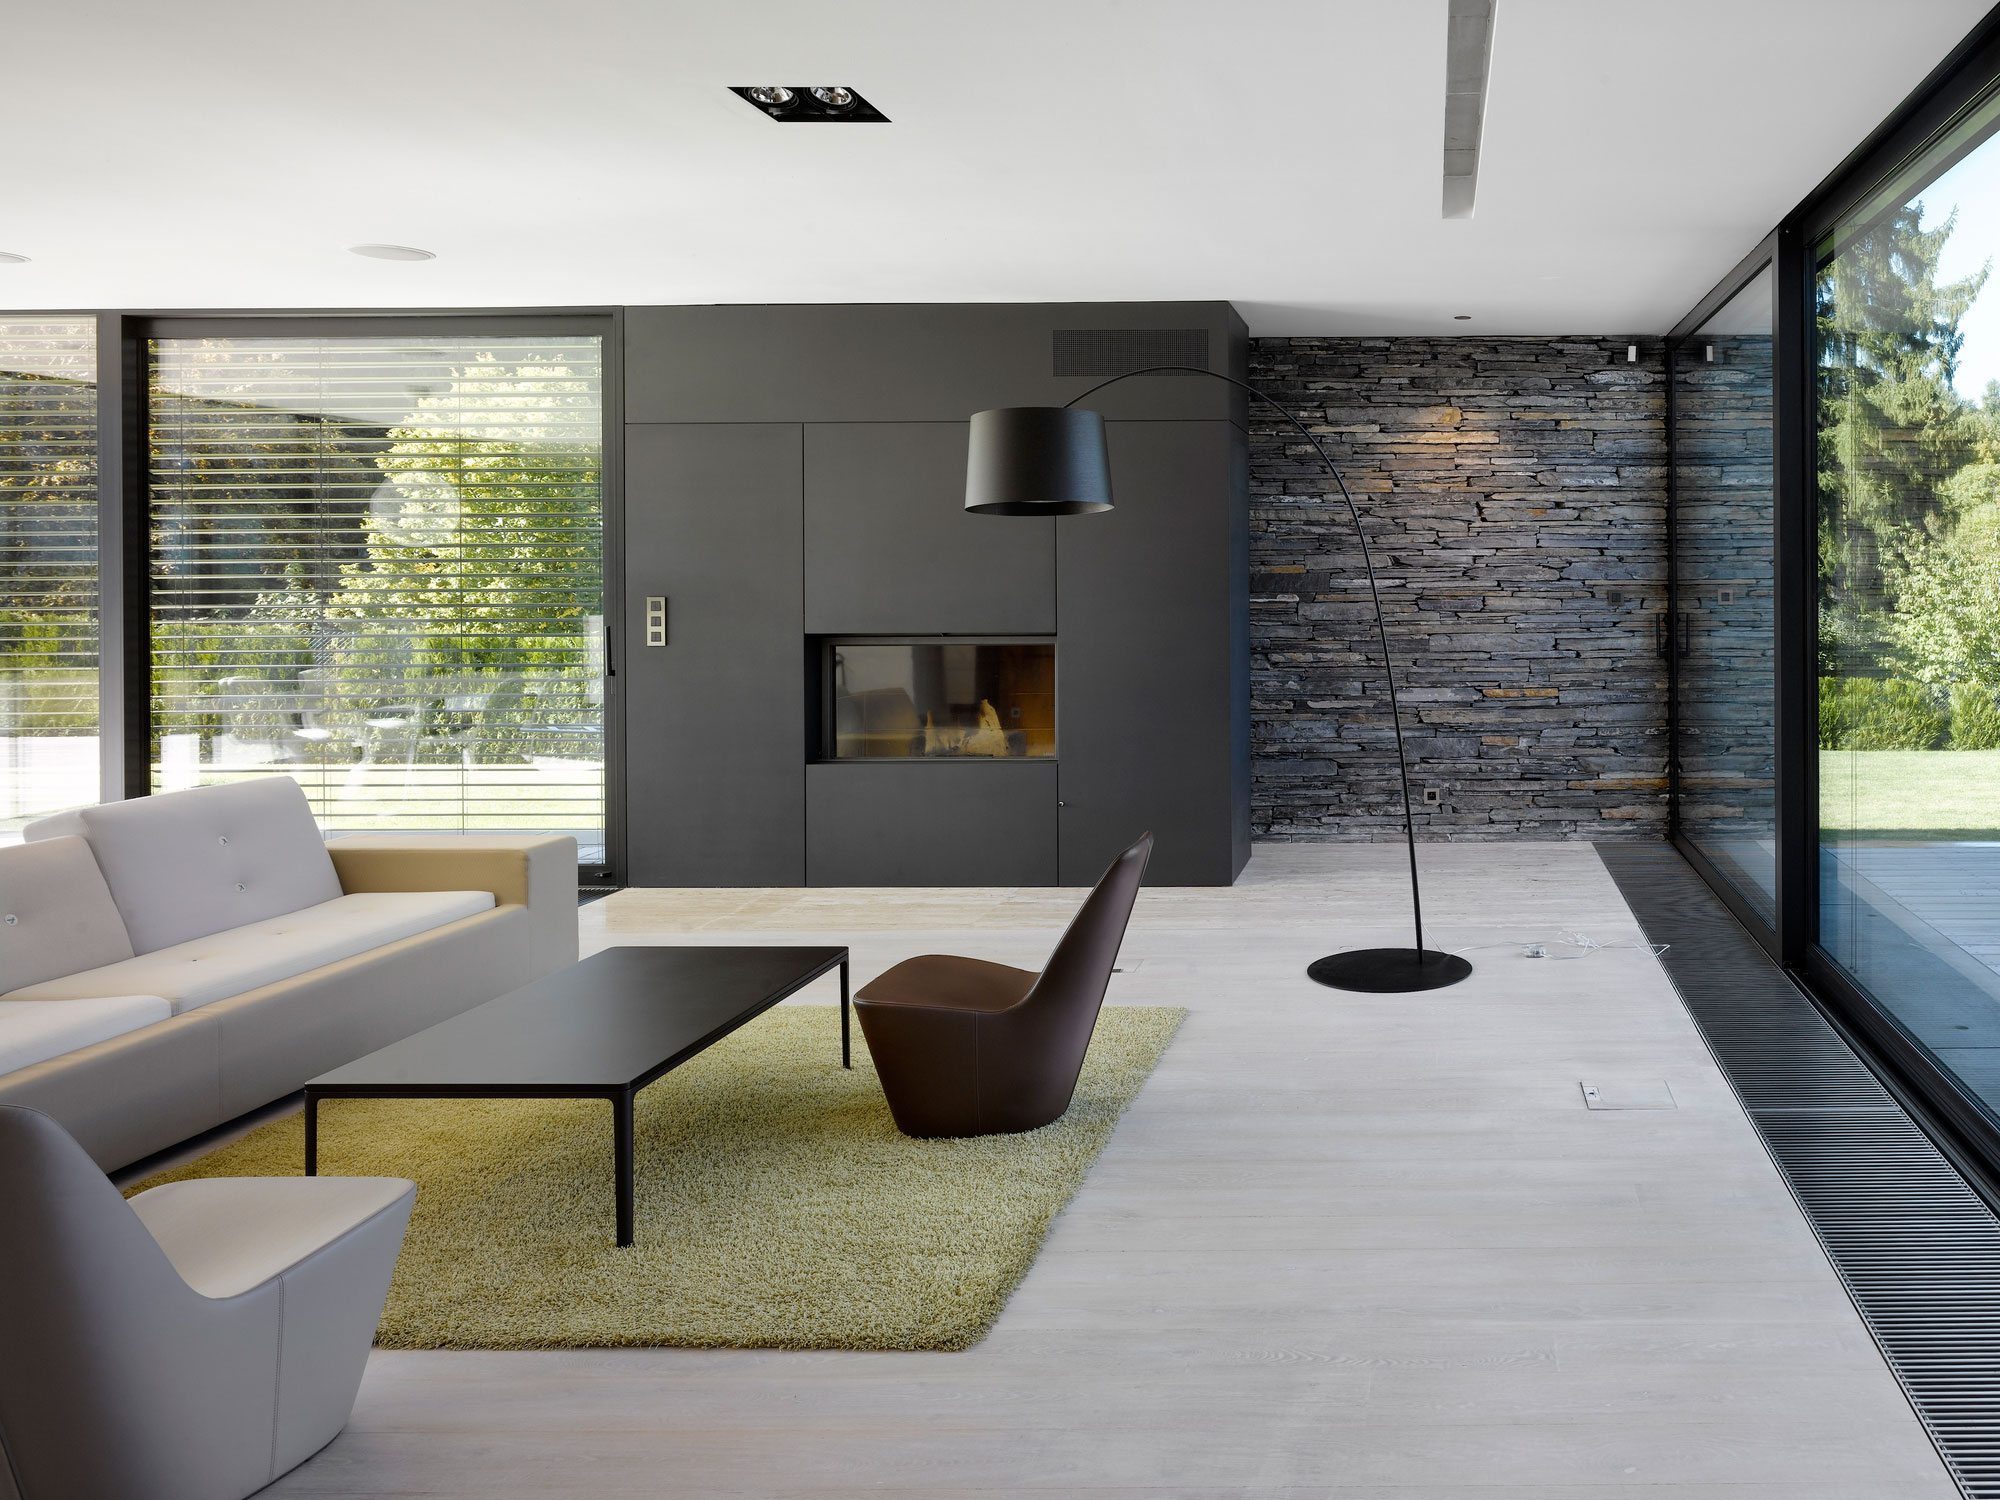 modern living room ideas with fireplace and tv powder room Hall Industrial Compact Accessories Landscape Designers Restoratio